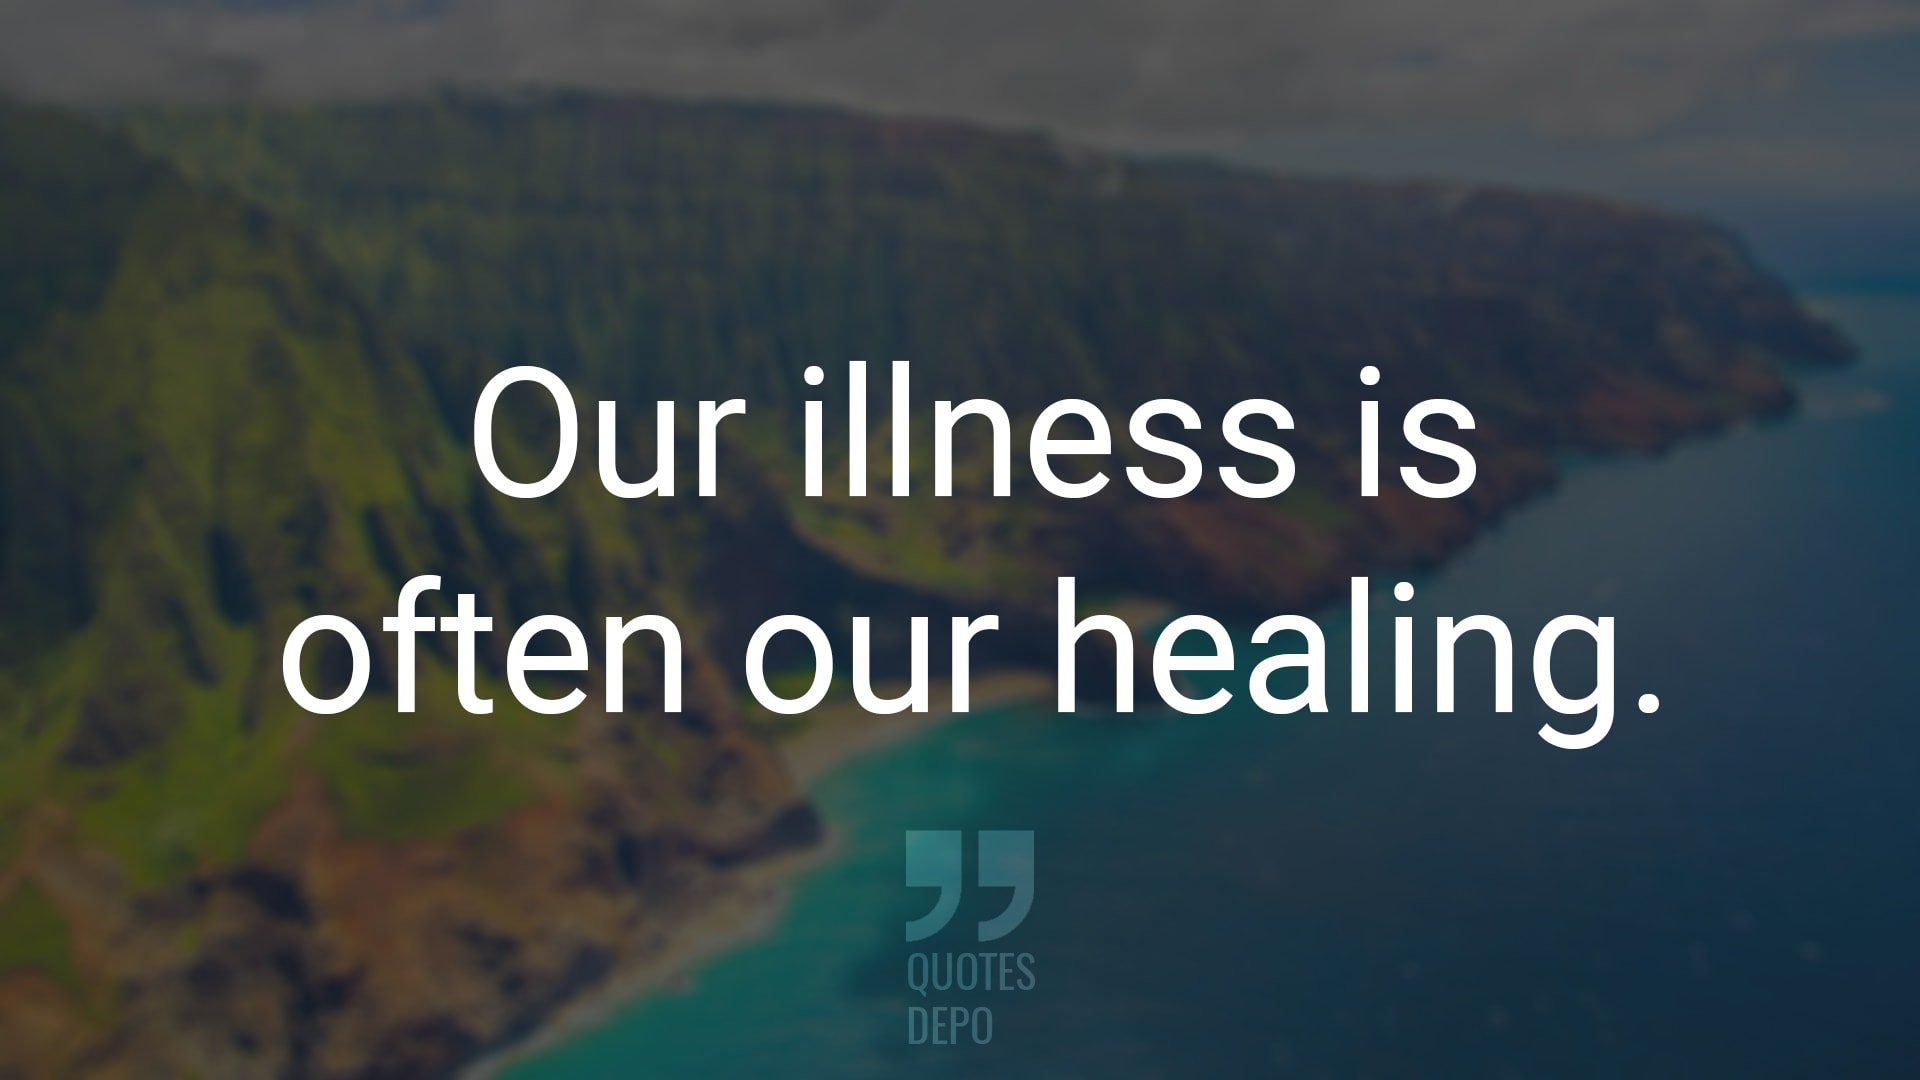 our illness is often our healing